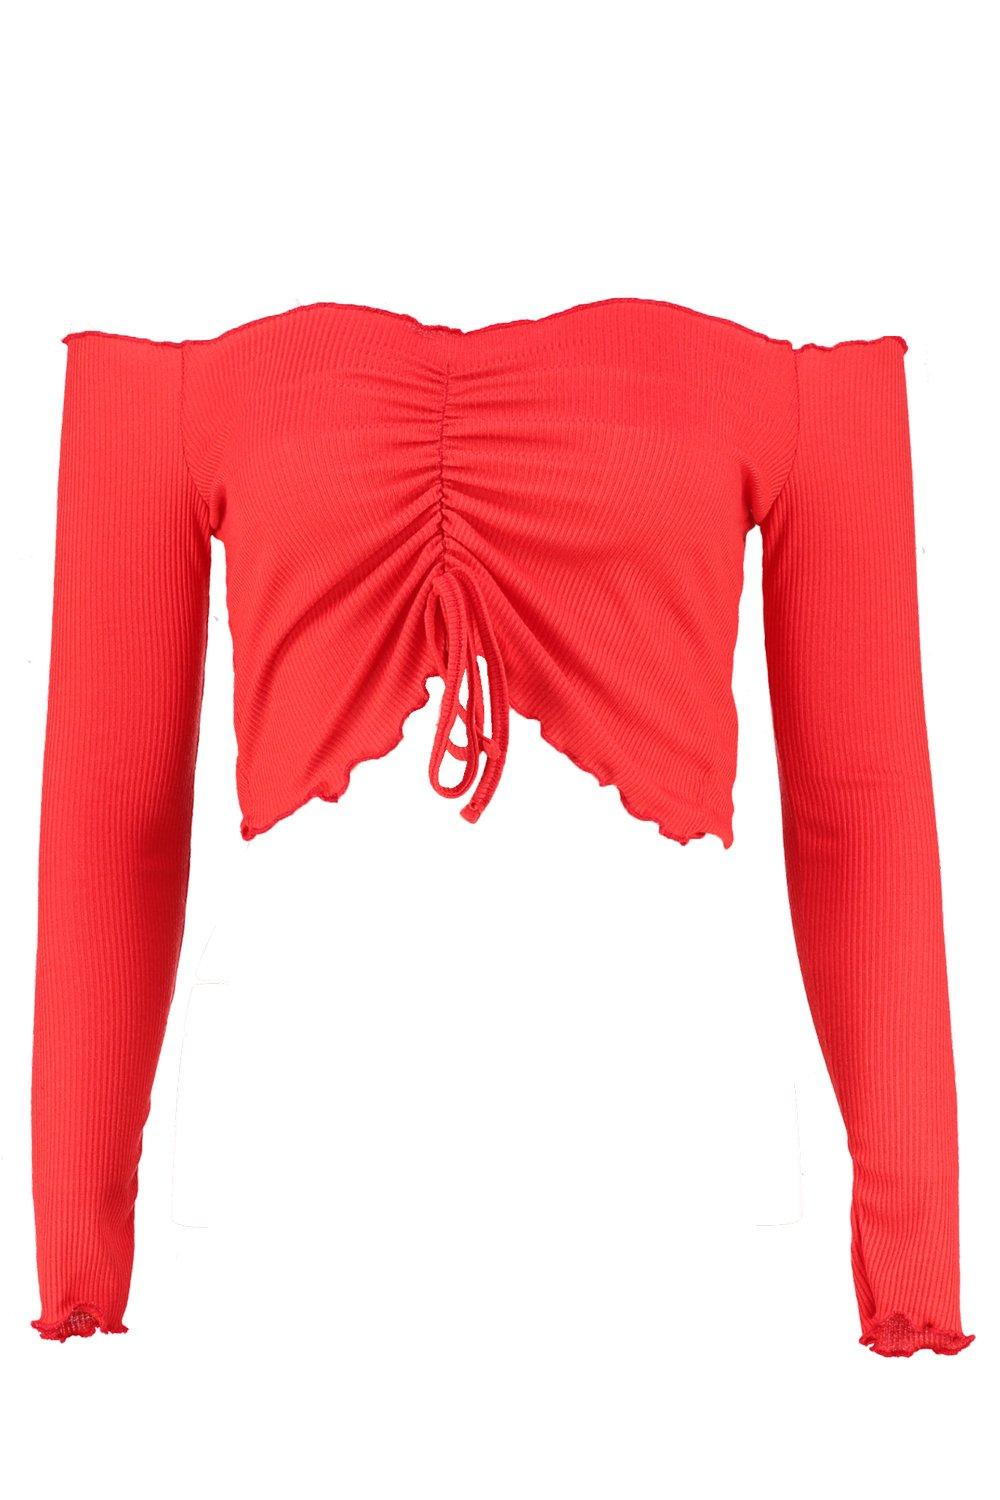 Front Ruched Crop red Hem Lettuce Top SdwqH6d